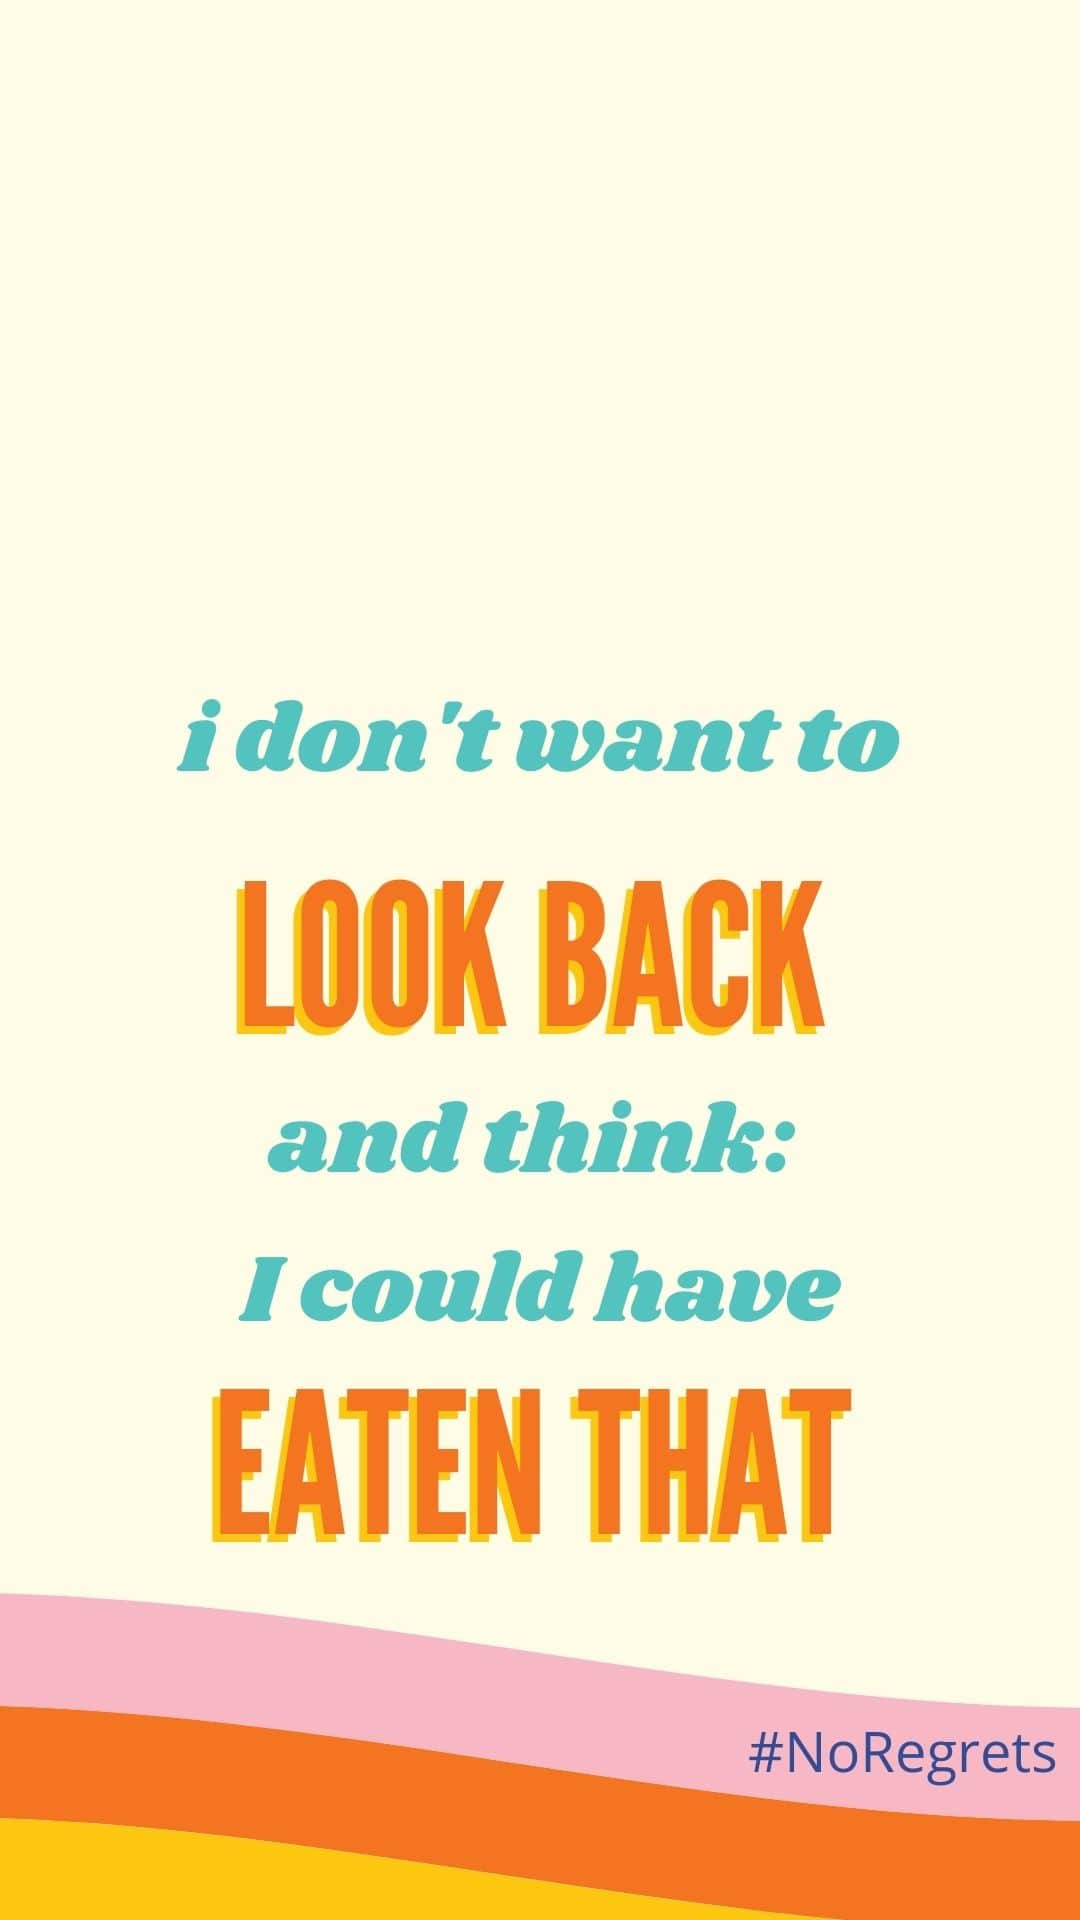 I don't want to look back and think 'I could've eaten that'